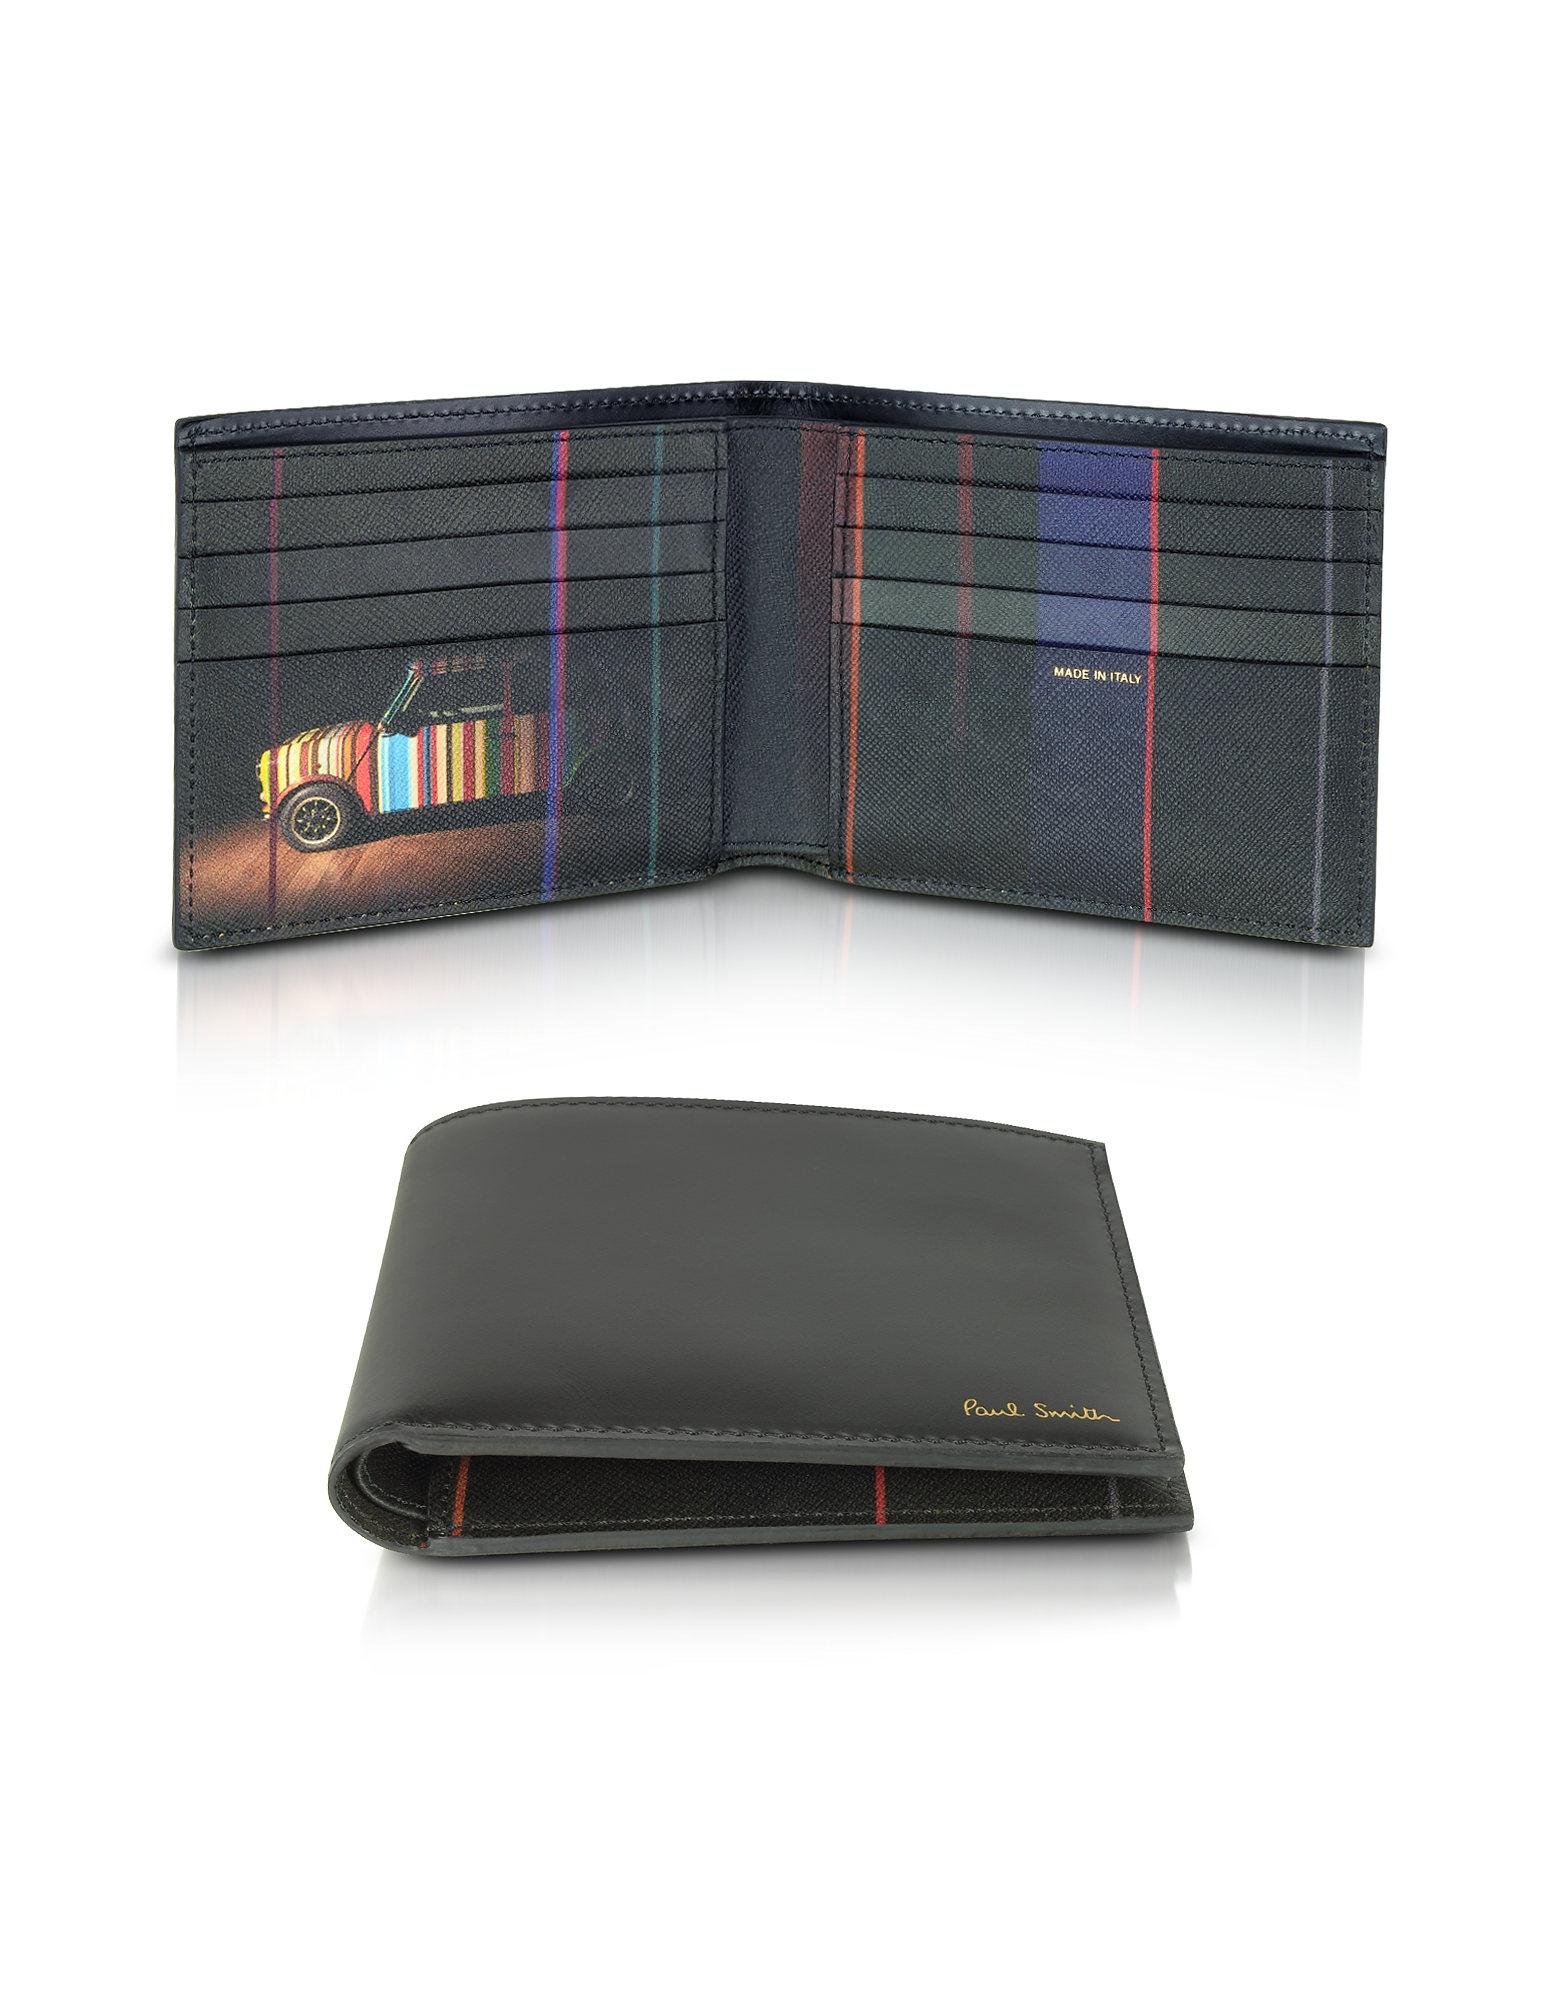 Paul Smith Wallets, Black Leather Mini Print Interior Billfold Men's Wallet